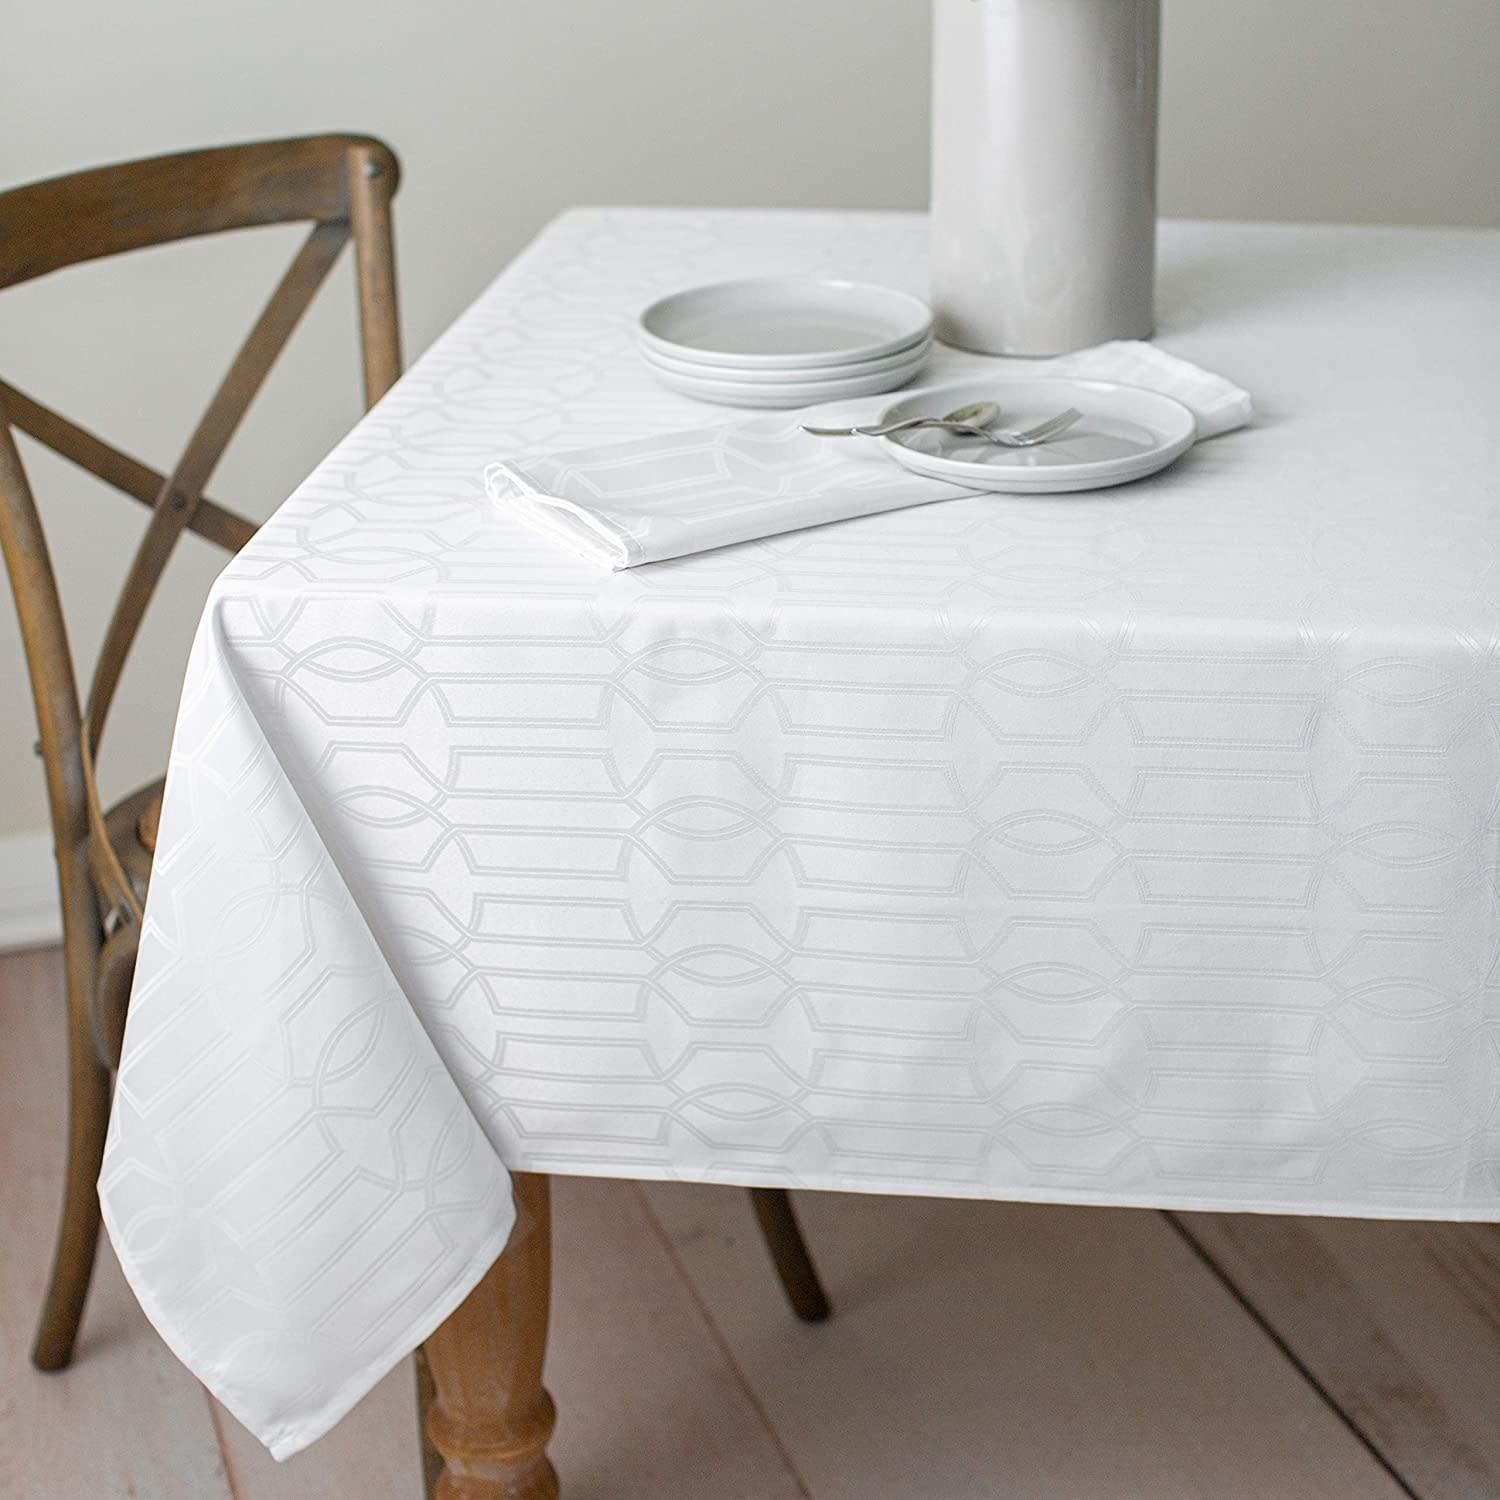 Orelle Spillproof Tablecloth 60 x 120